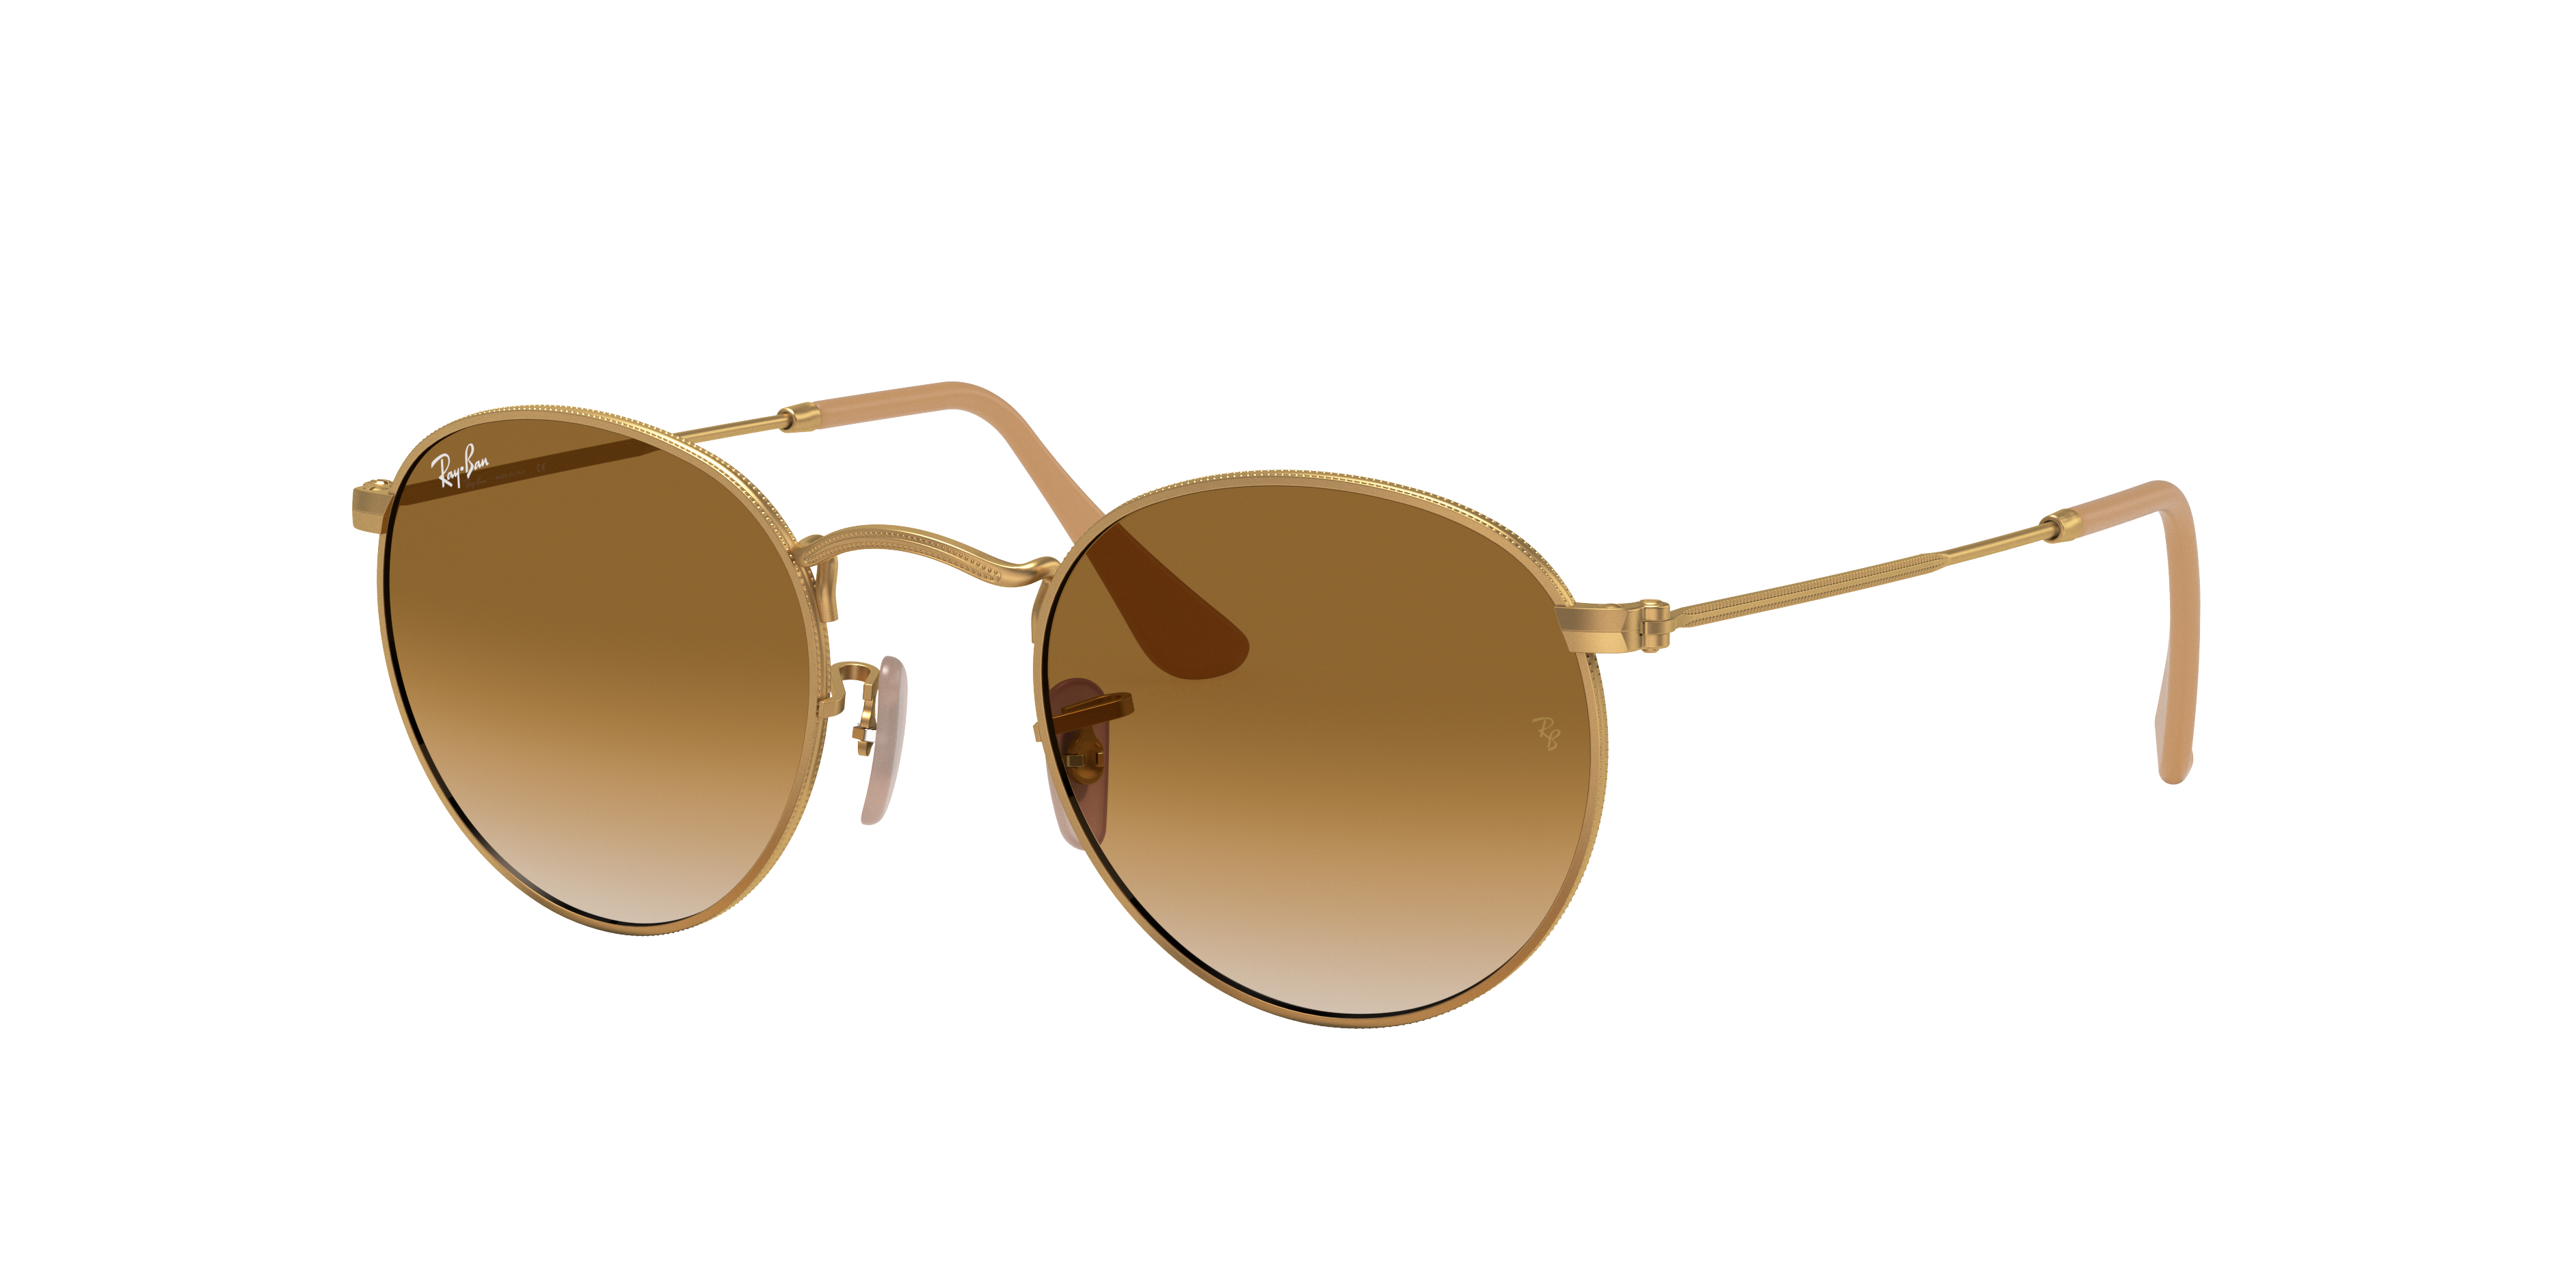 Ray-Ban Round Metal Gold, Brown Lenses - RB3447